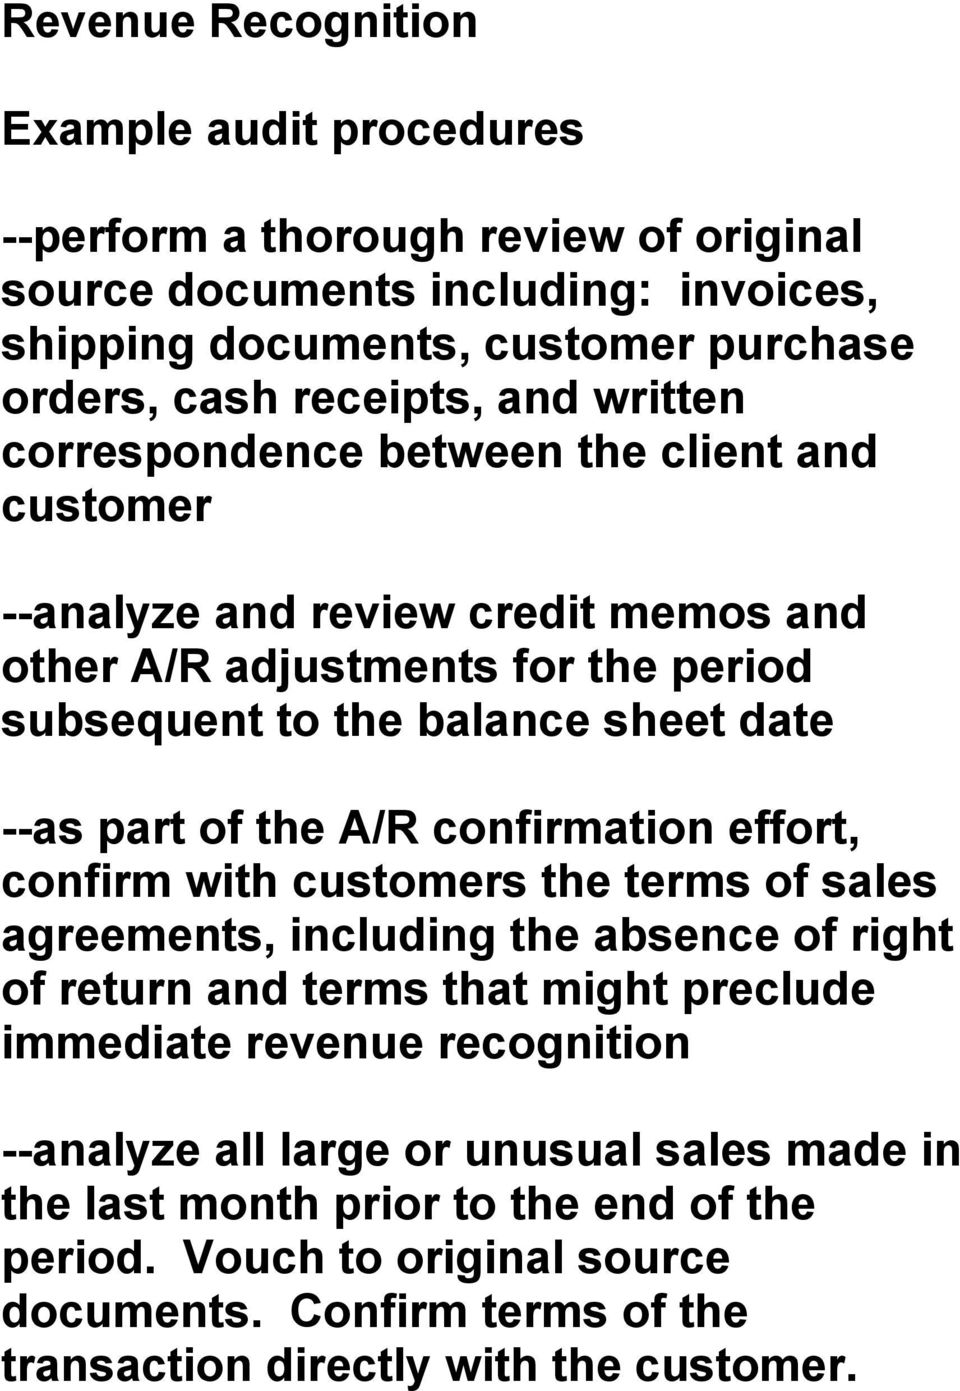 the A/R confirmation effort, confirm with customers the terms of sales agreements, including the absence of right of return and terms that might preclude immediate revenue recognition